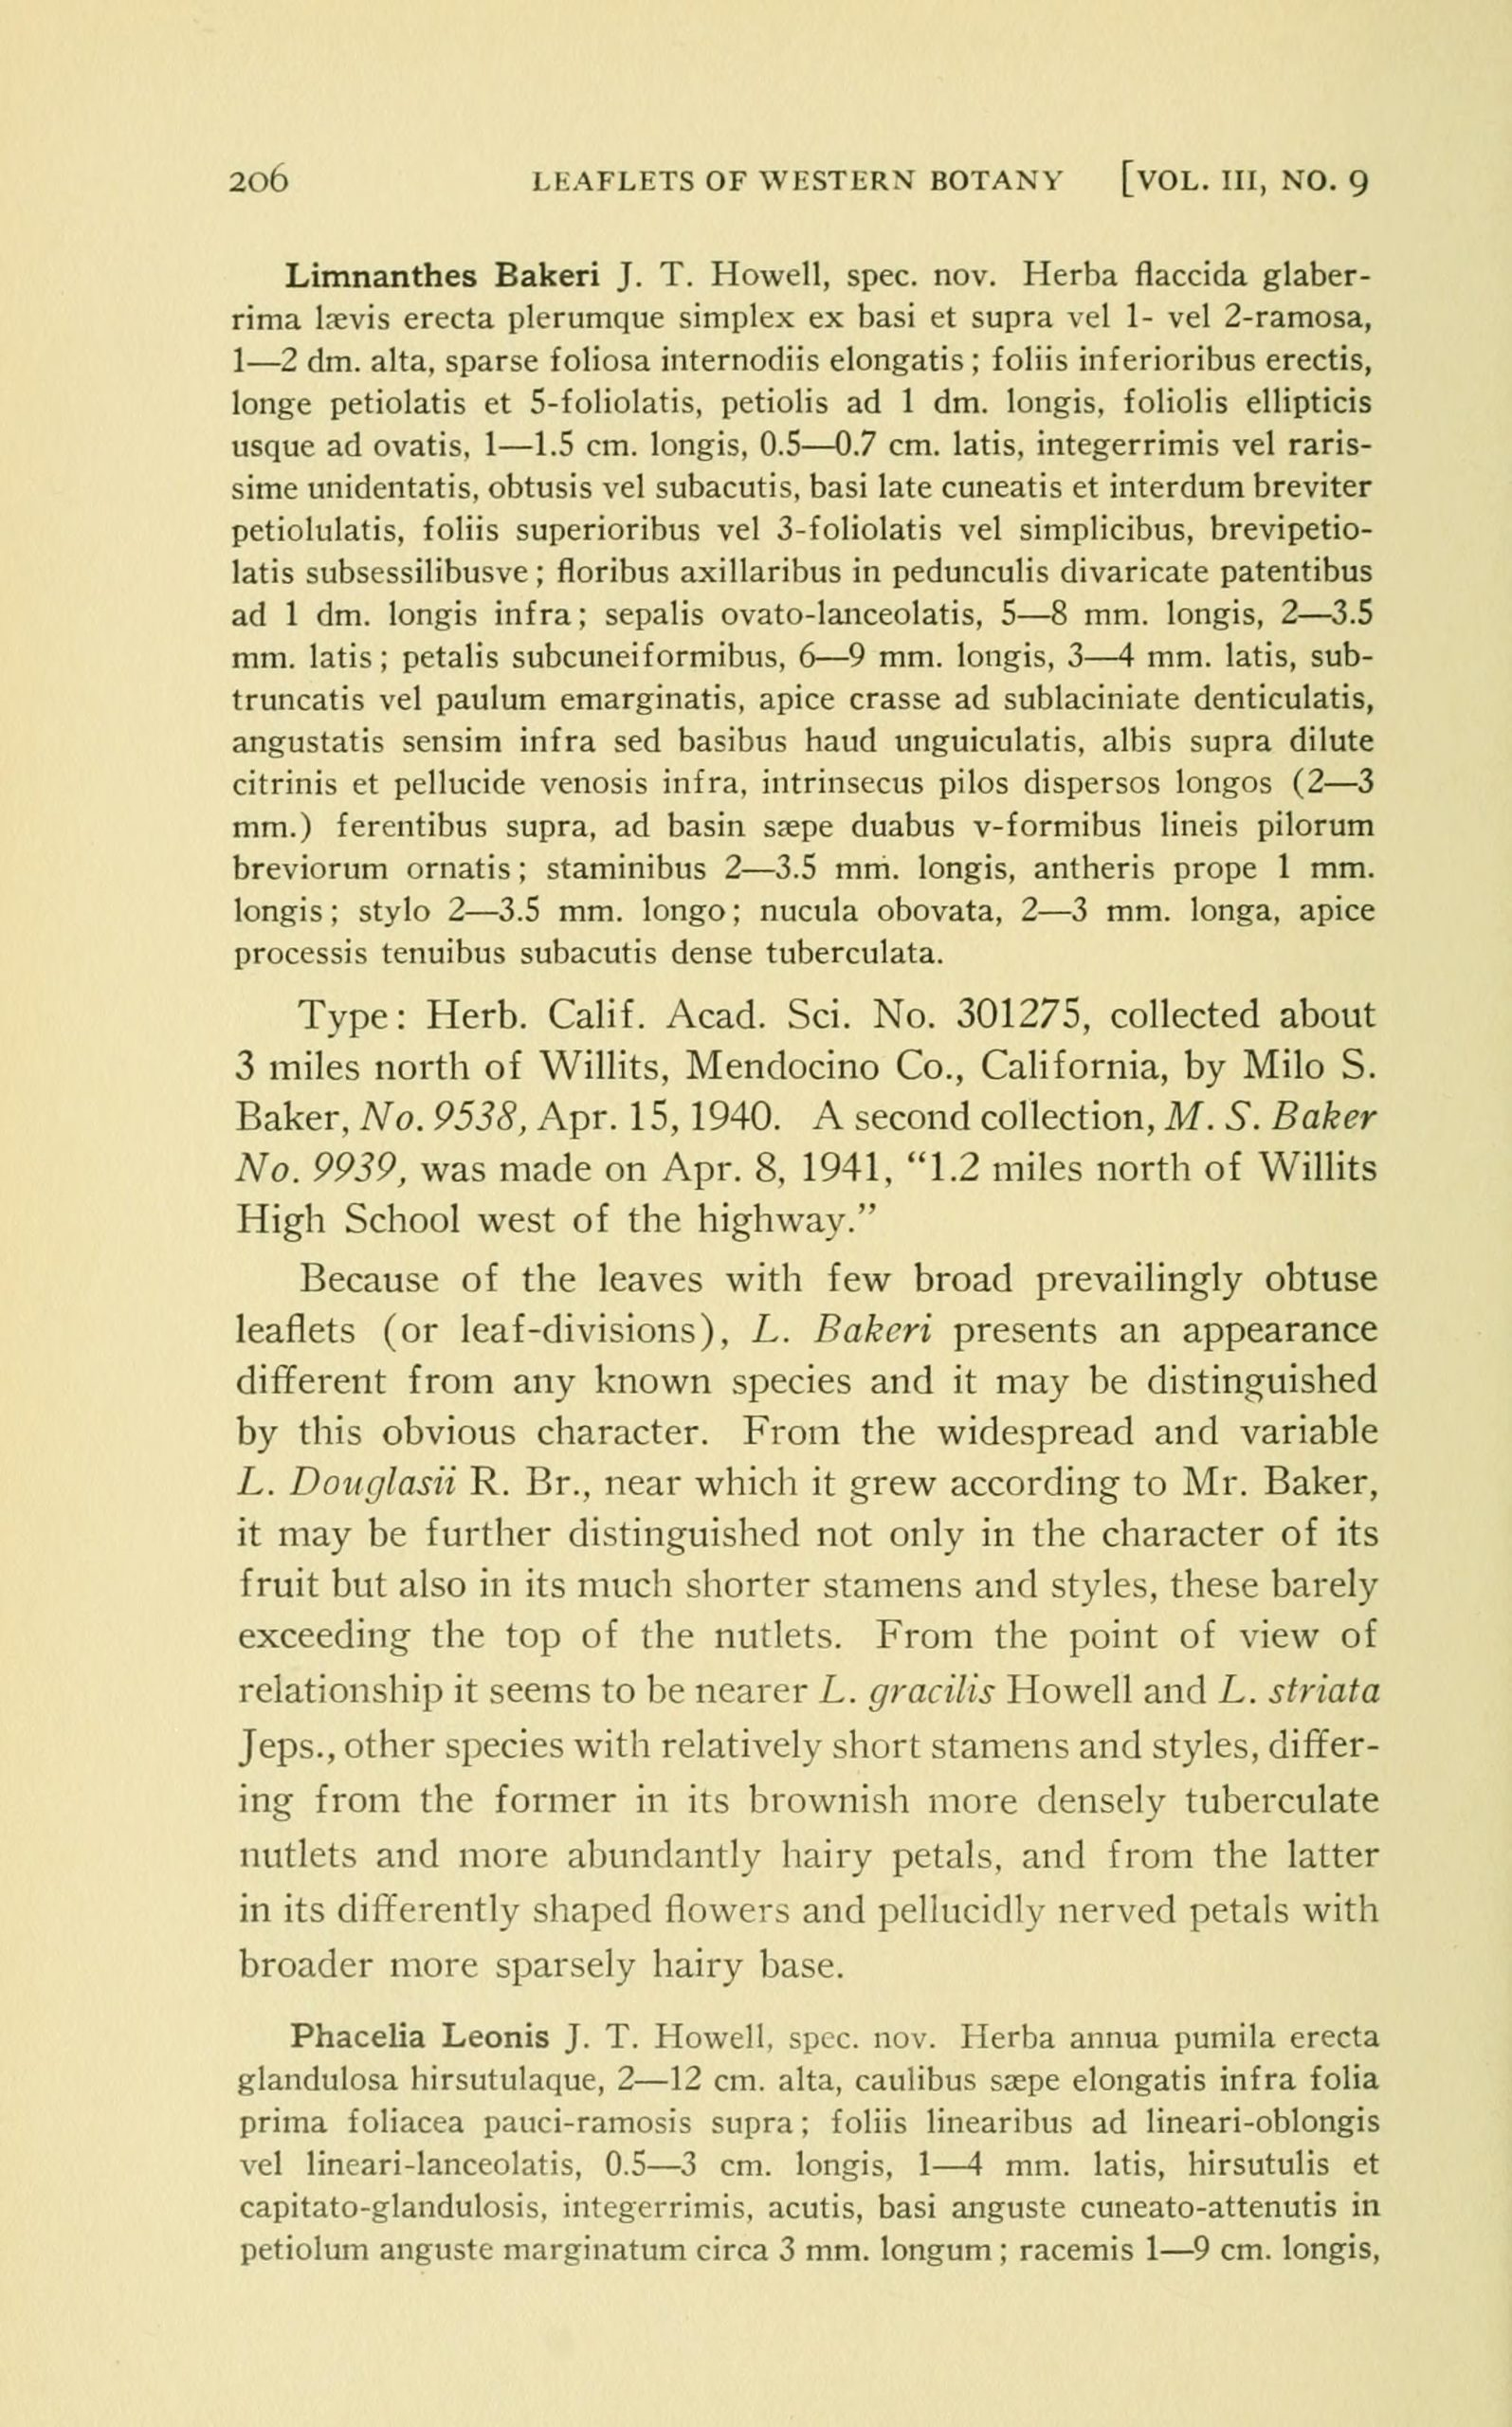 scanned page of text from a book